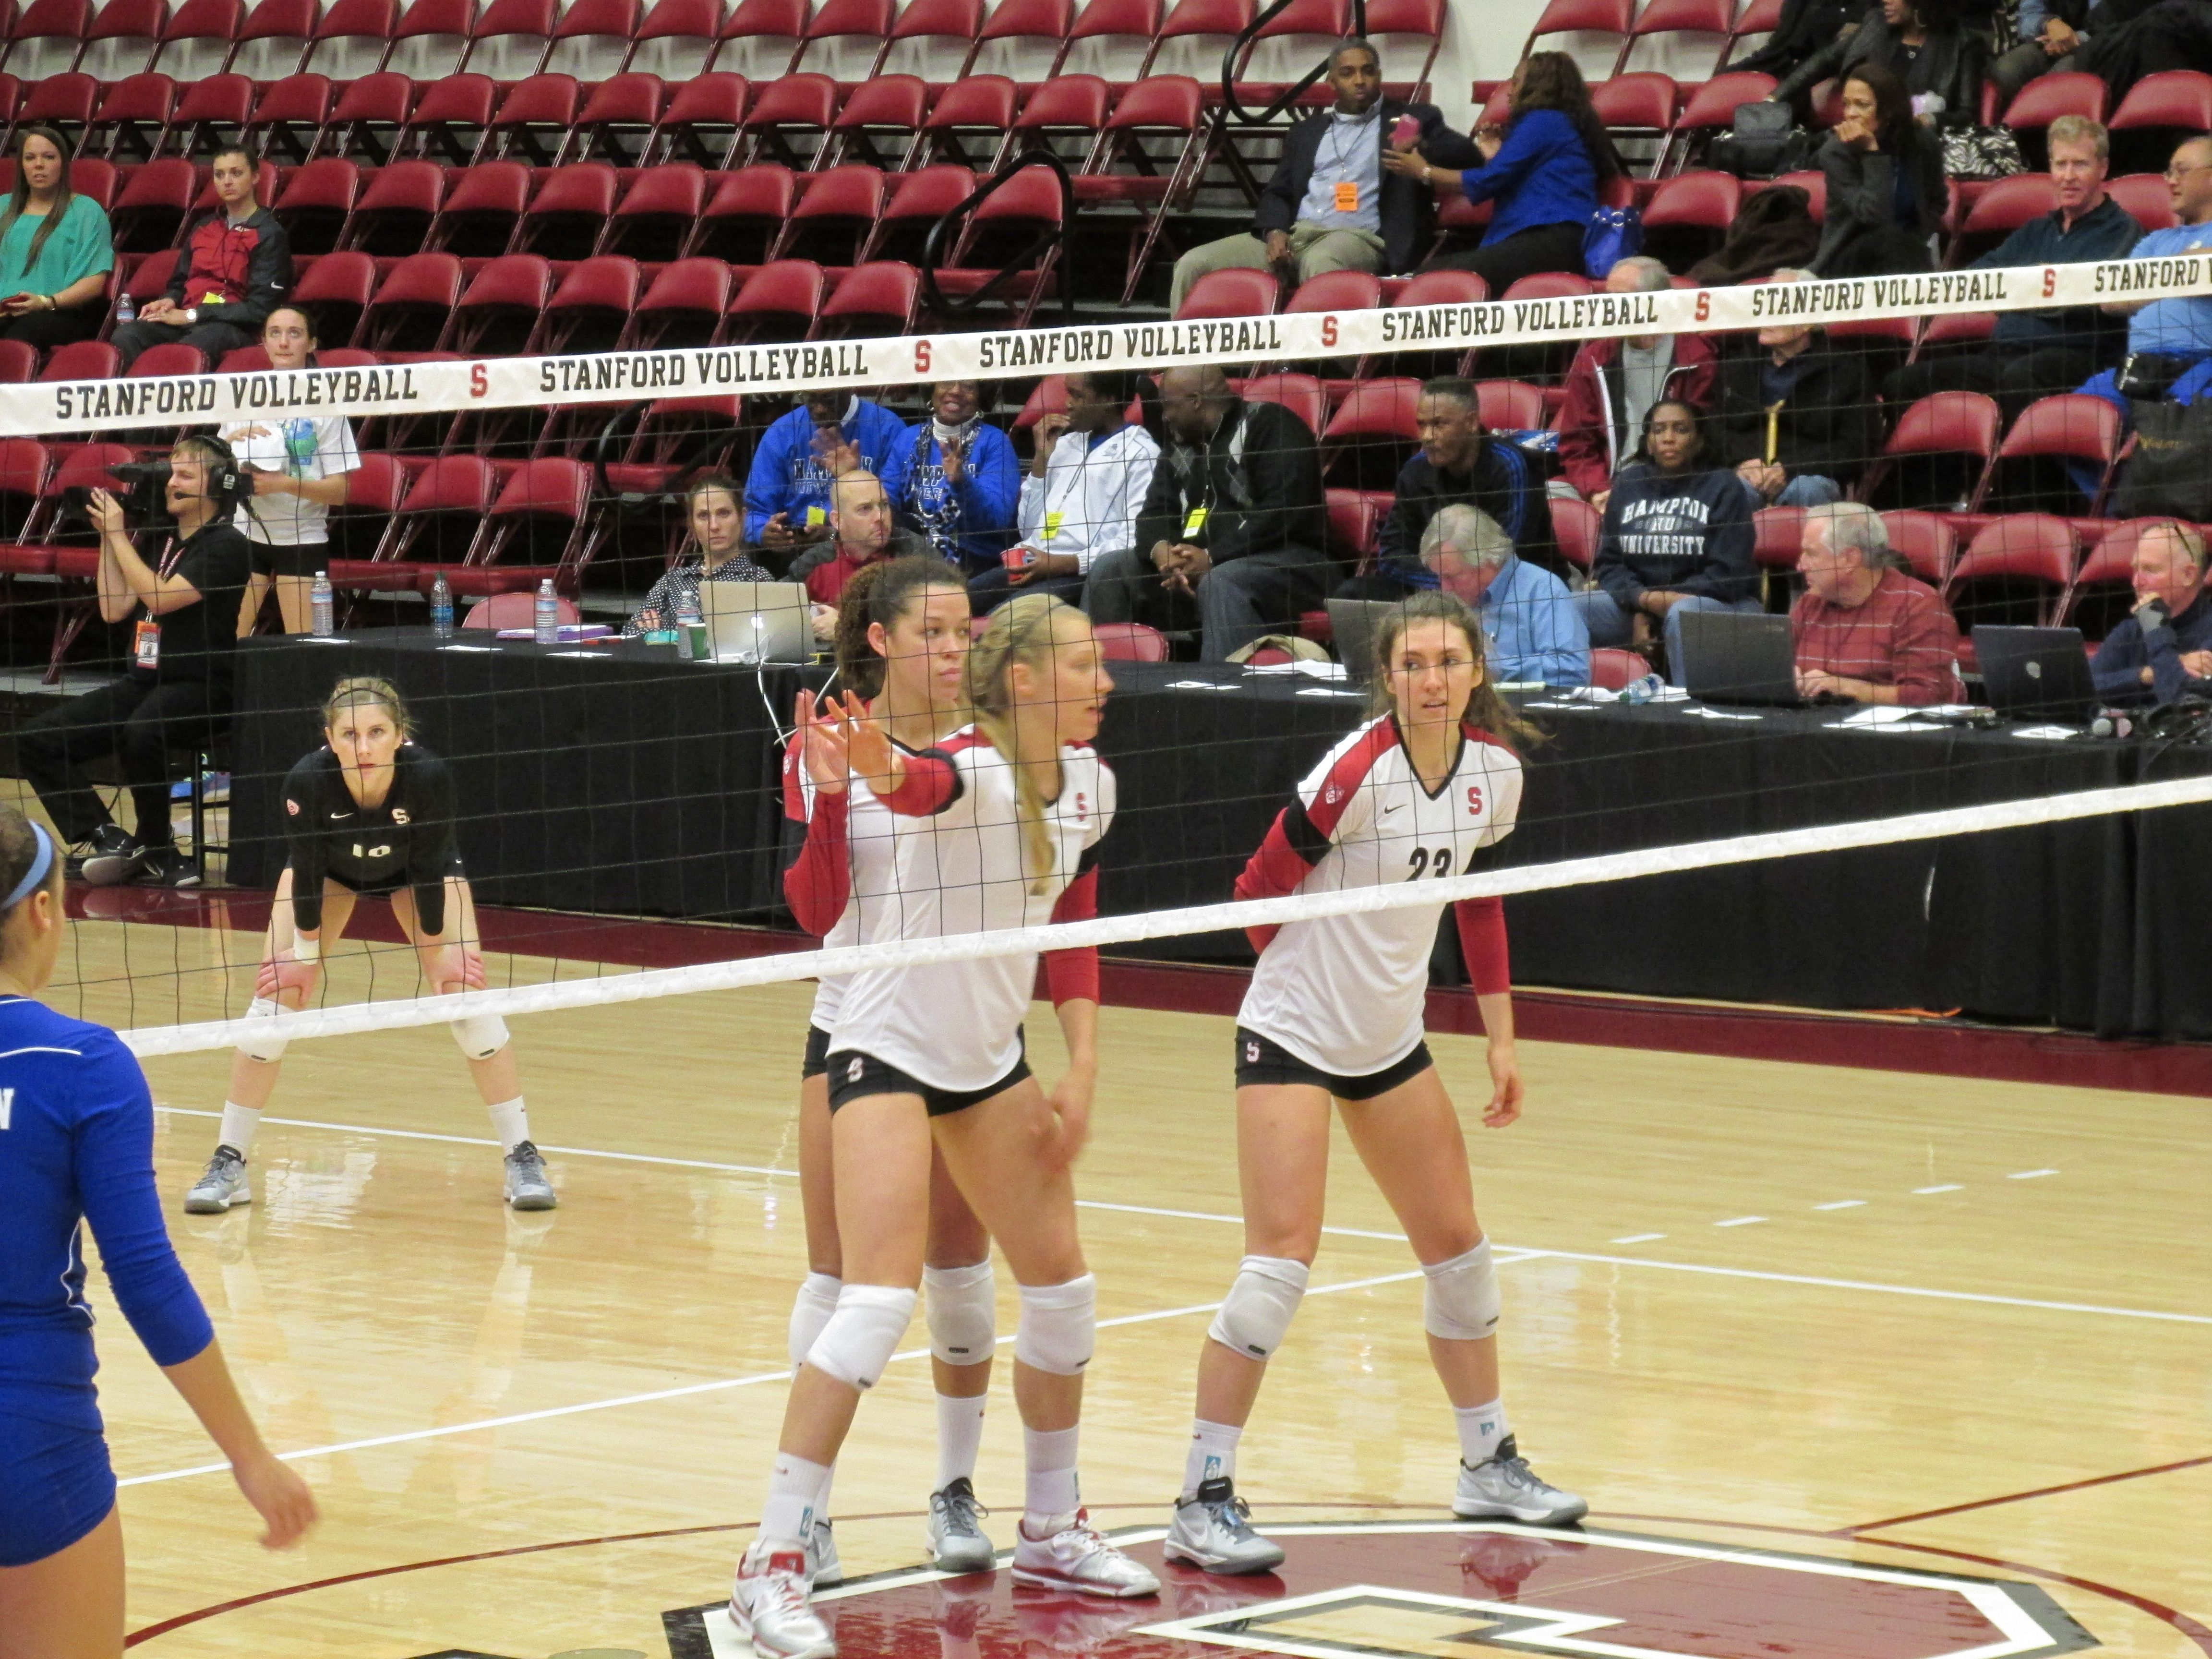 Carly Wopat And Jordan Burgess Of Stanford Make Defensive Calls On Serve Receive Against Hampton In A Round 1 Vi Stanford Volleyball Volleyball Ncaa Tournament